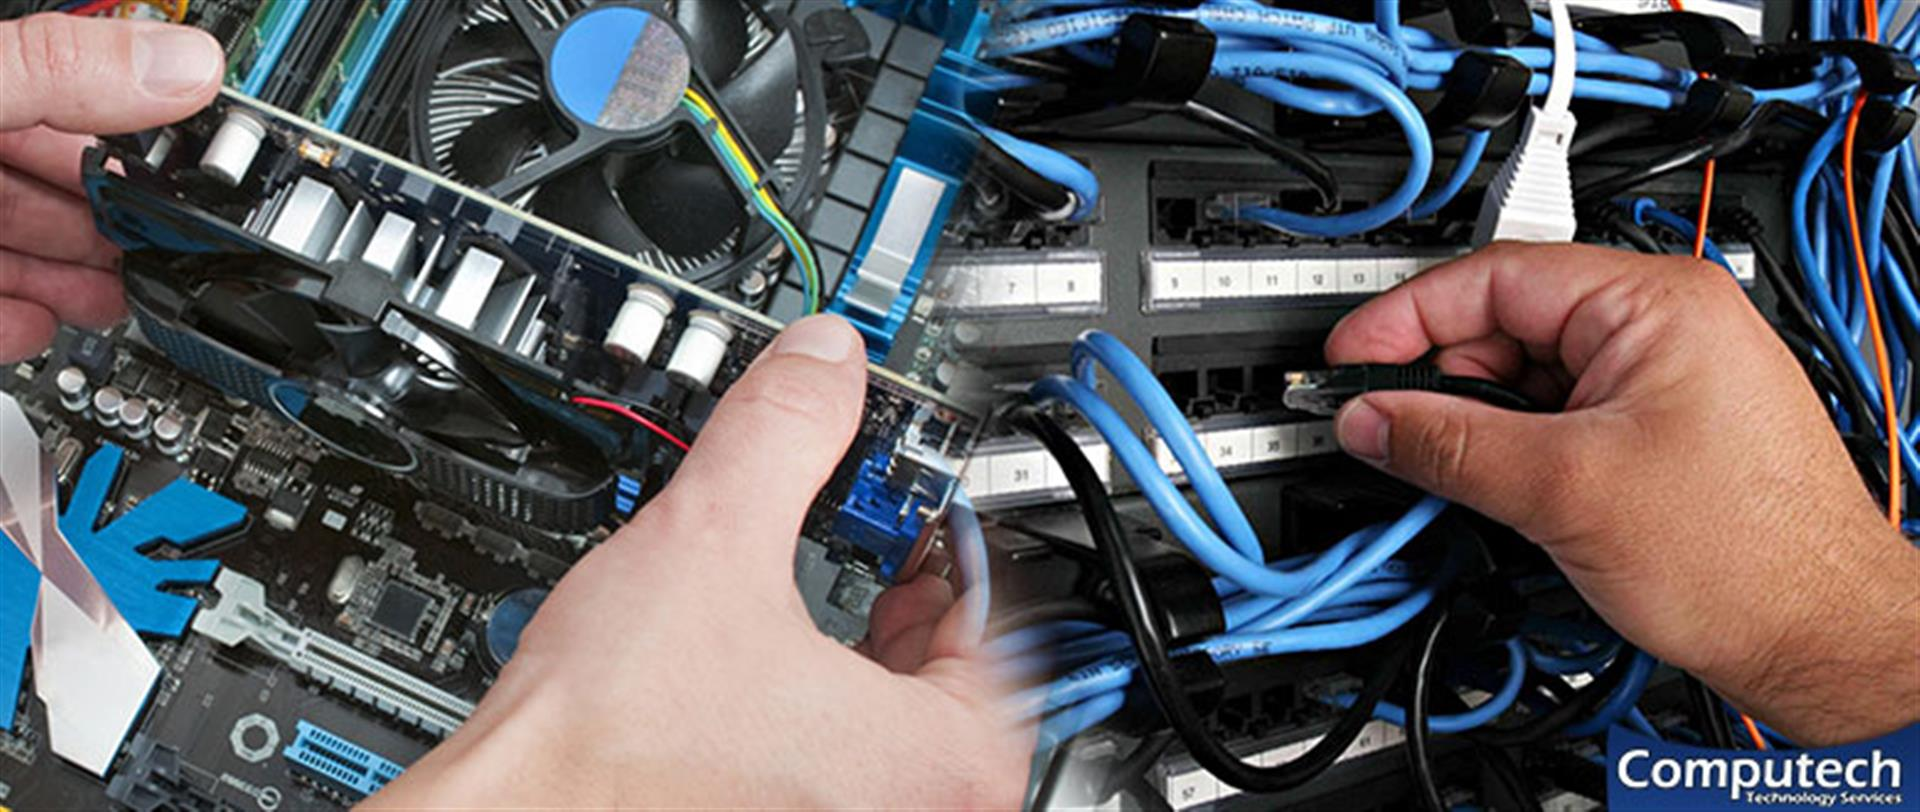 Columbia Tennessee Onsite PC and Printer Repairs, Networking, Voice & Data Cabling Solutions